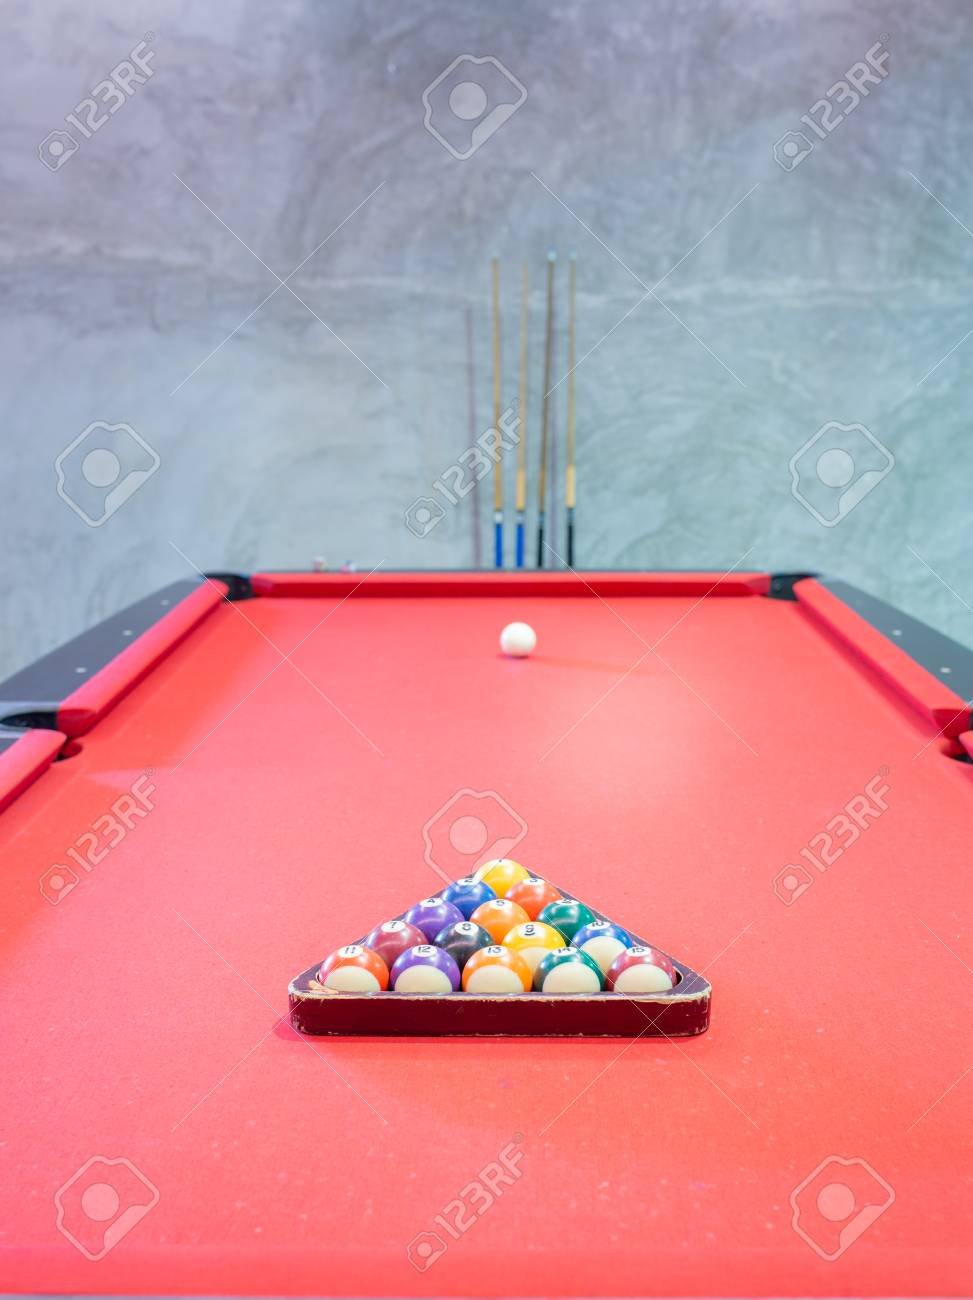 Billiard Ball On Red Table Background In Pub Bar Room Concept 973x1300